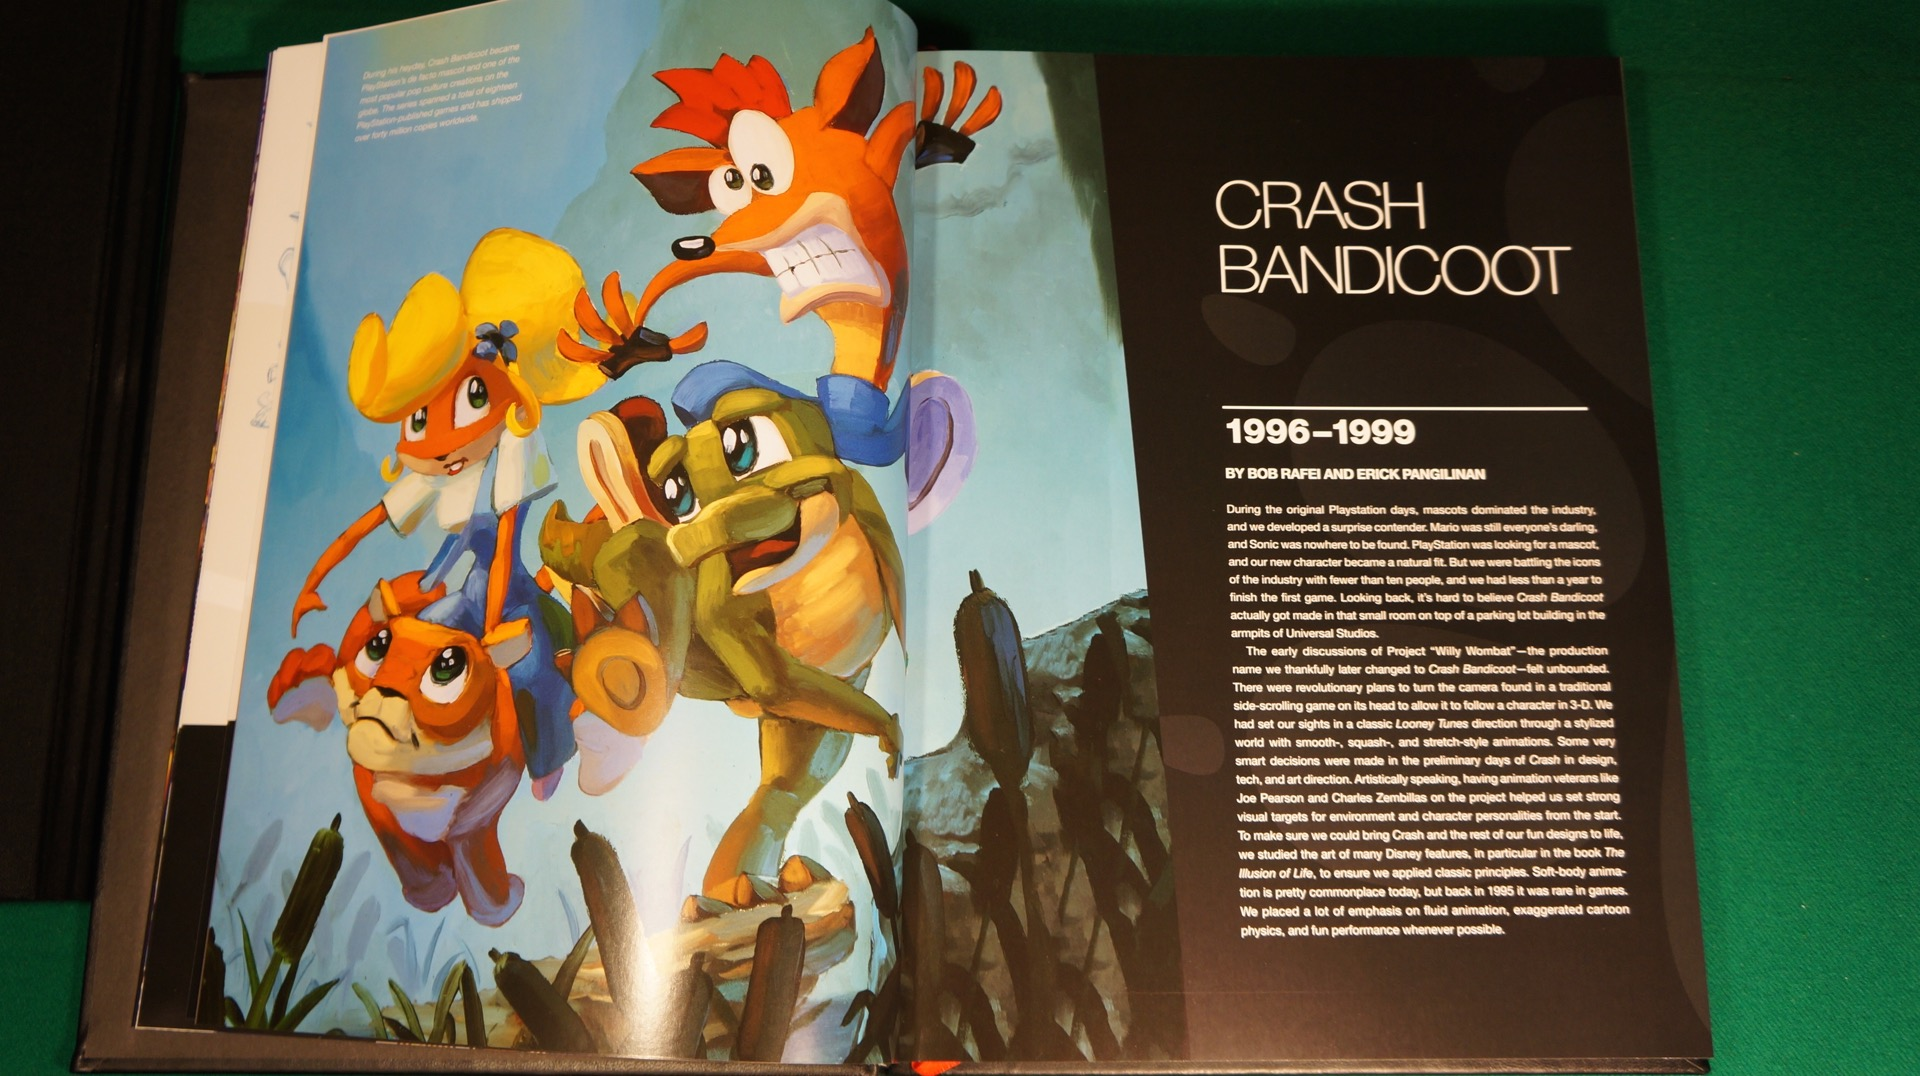 Crash Libro Naughty Dog 30 Años11 Tec